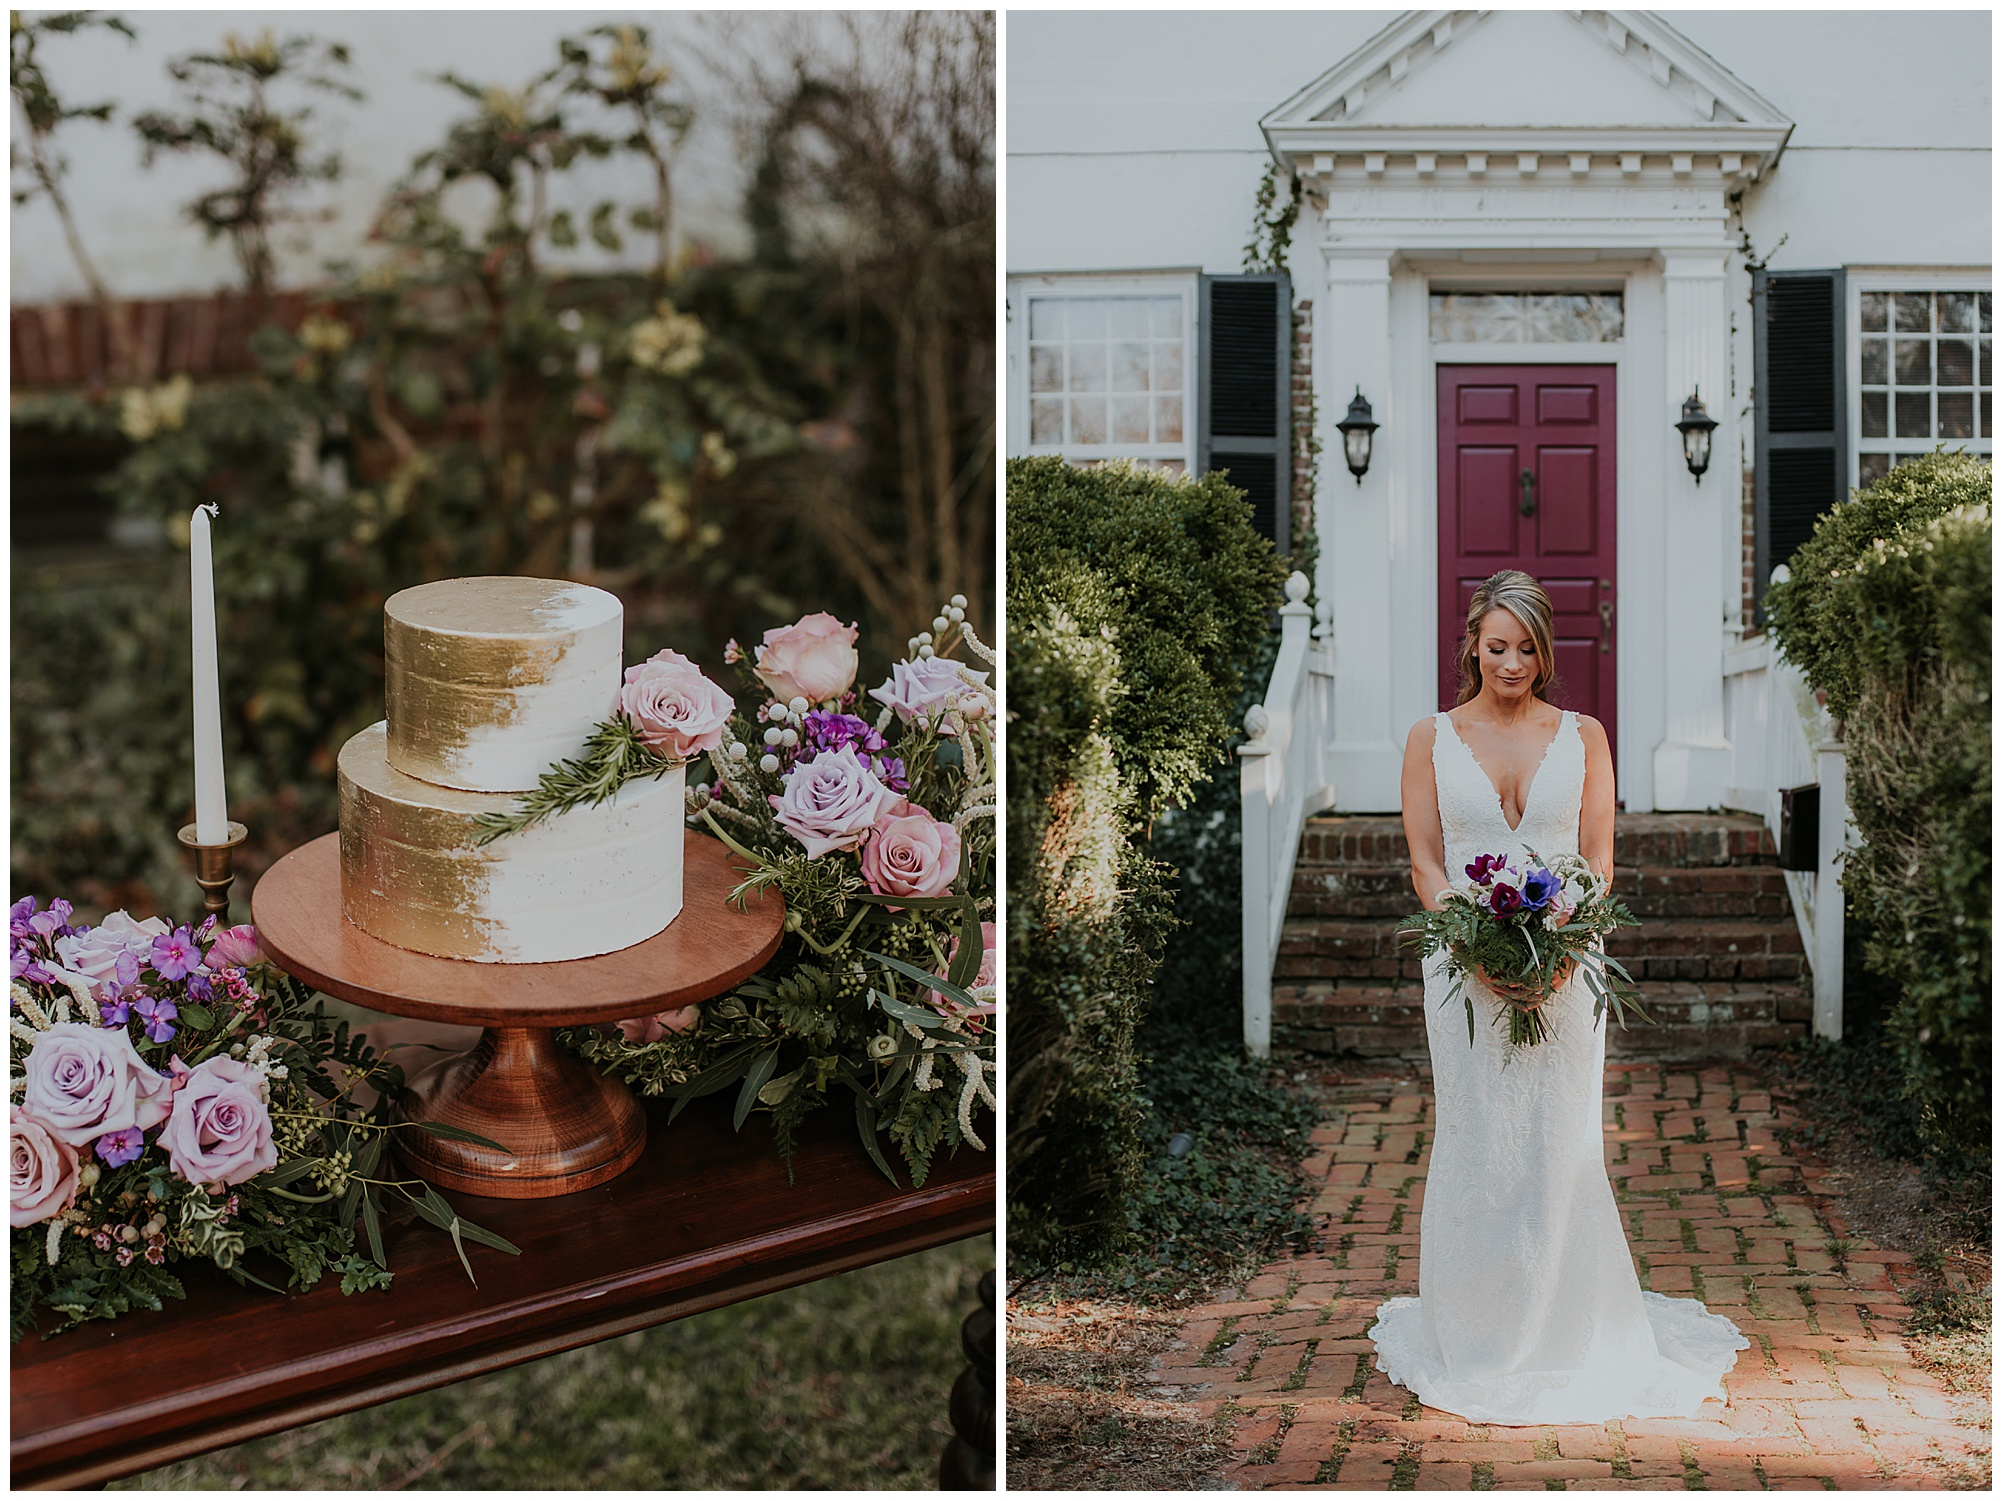 glamorous and boho style wedding theme at chanceford hall bed and breakfast. bride outdoors at historic venue. photo of gold and white wedding cake. maryland wedding now featured on my eastern shore wedding.